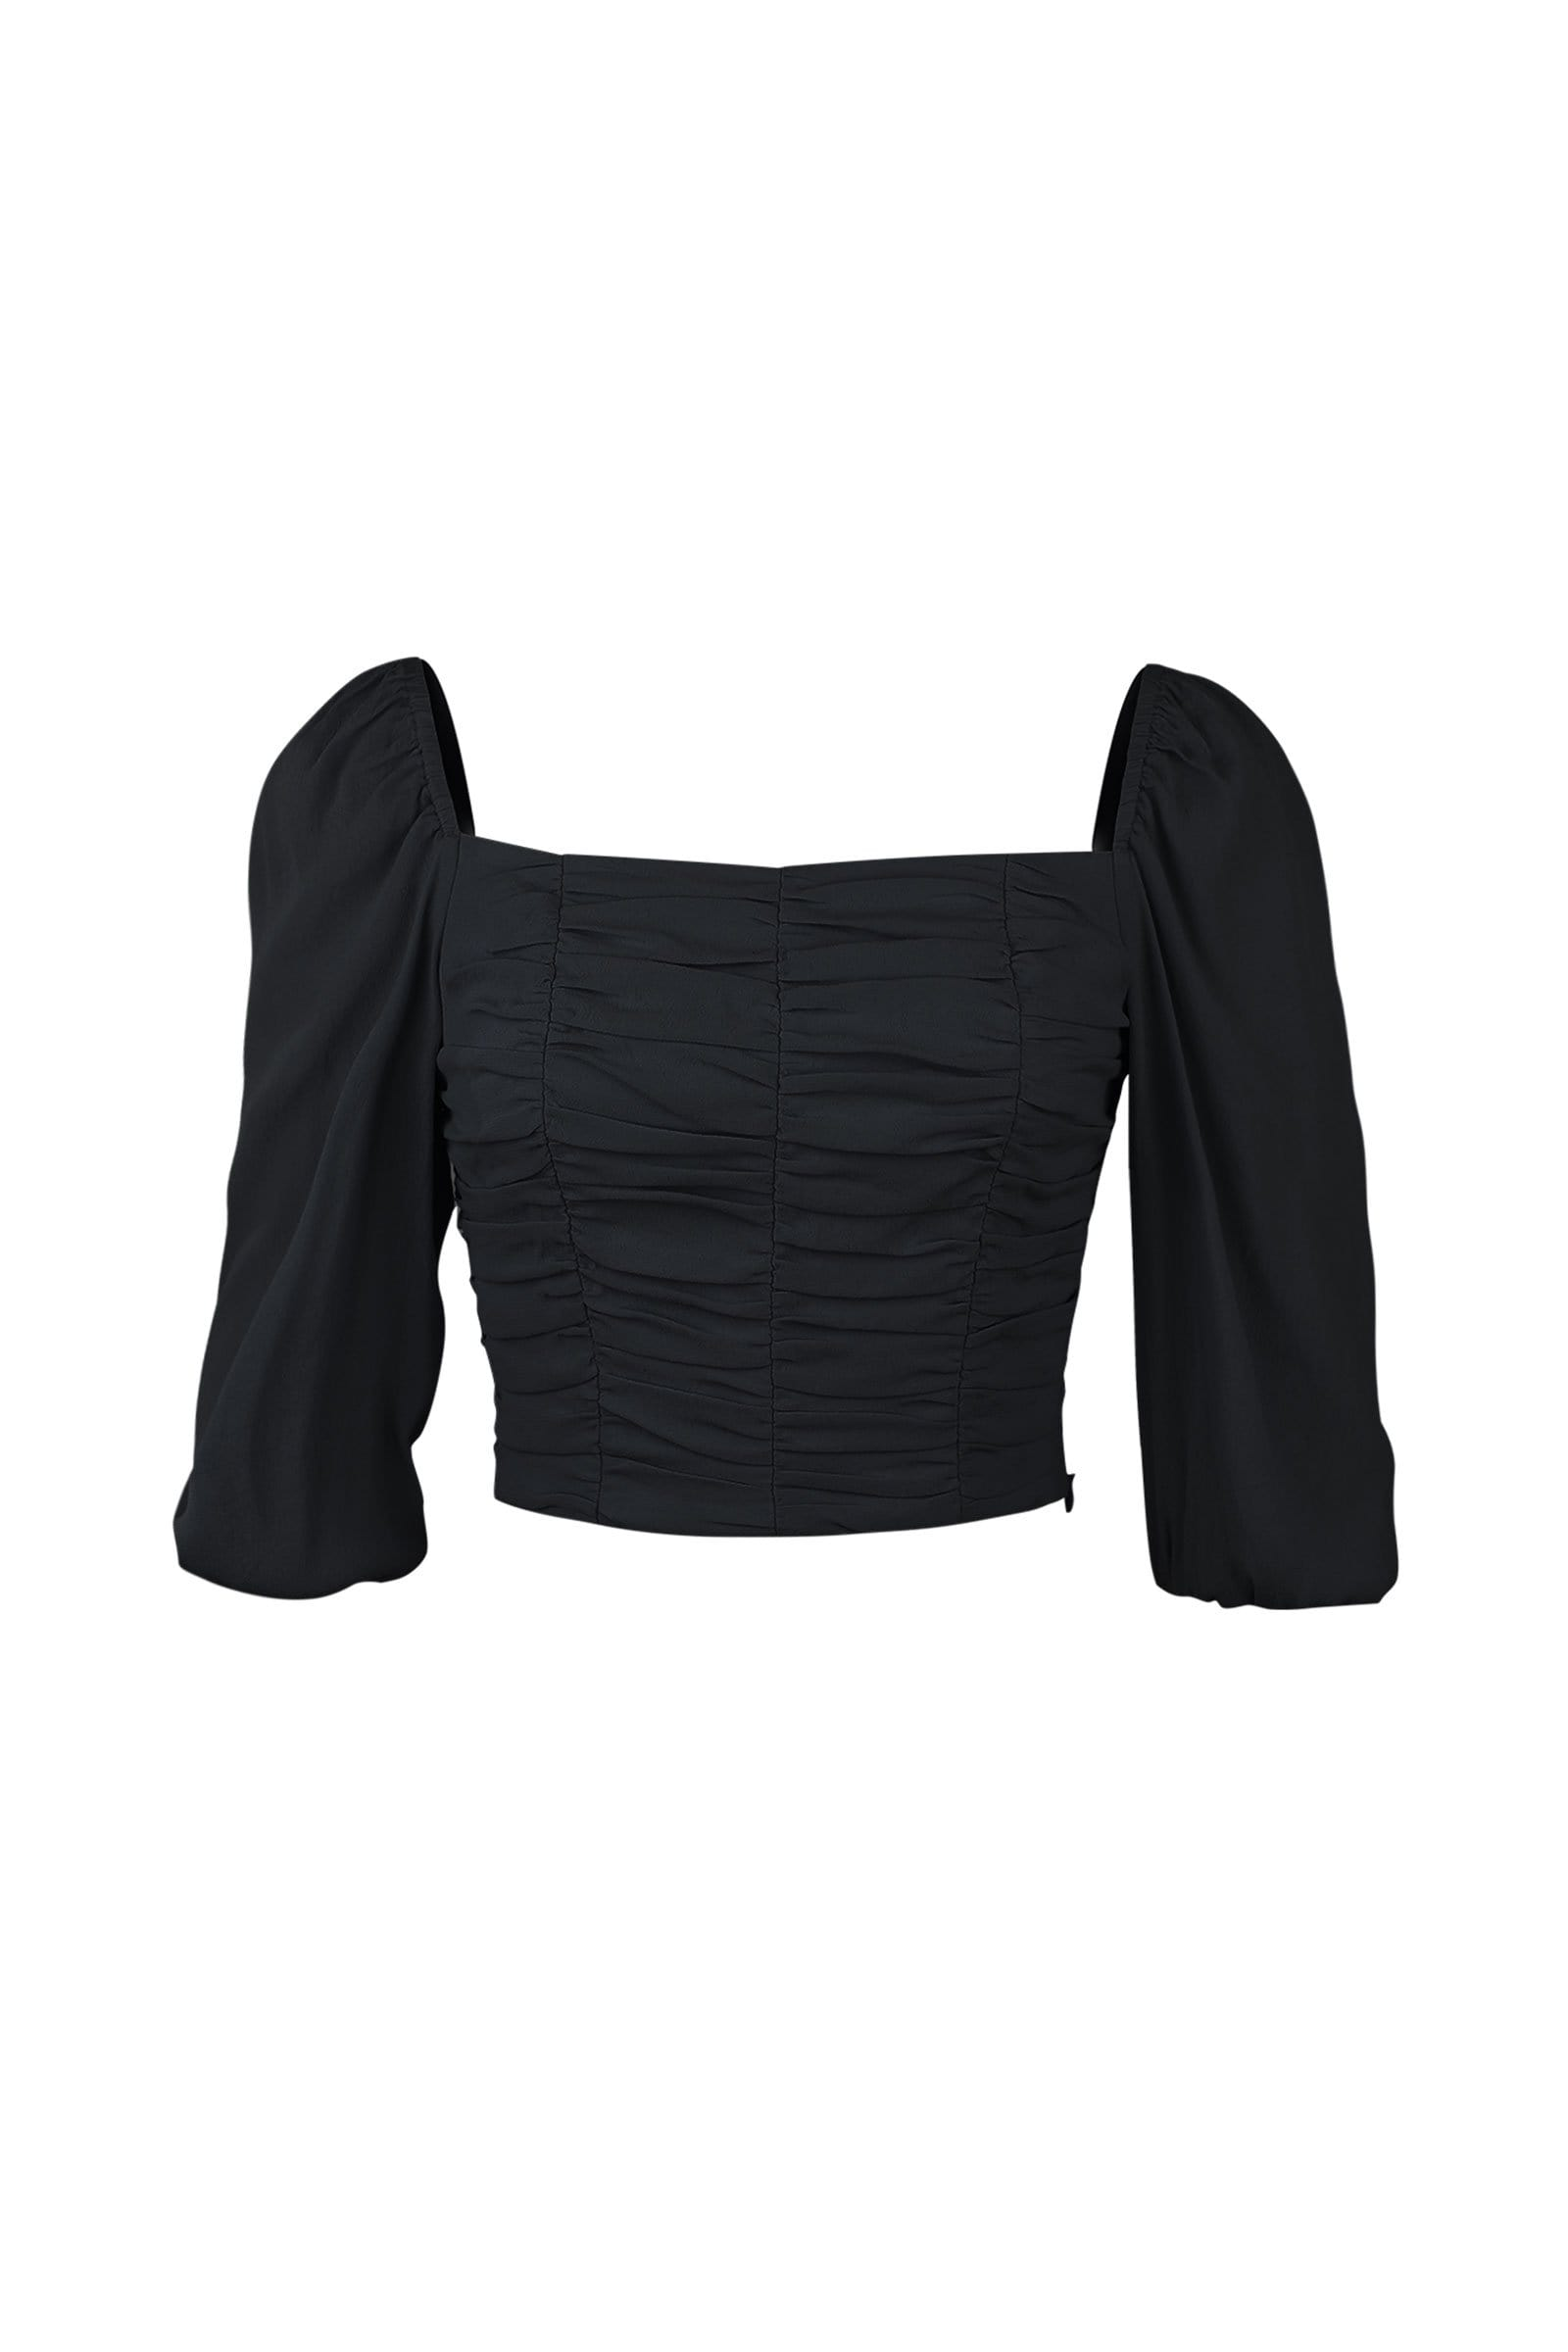 Elena Black Square Neck Top